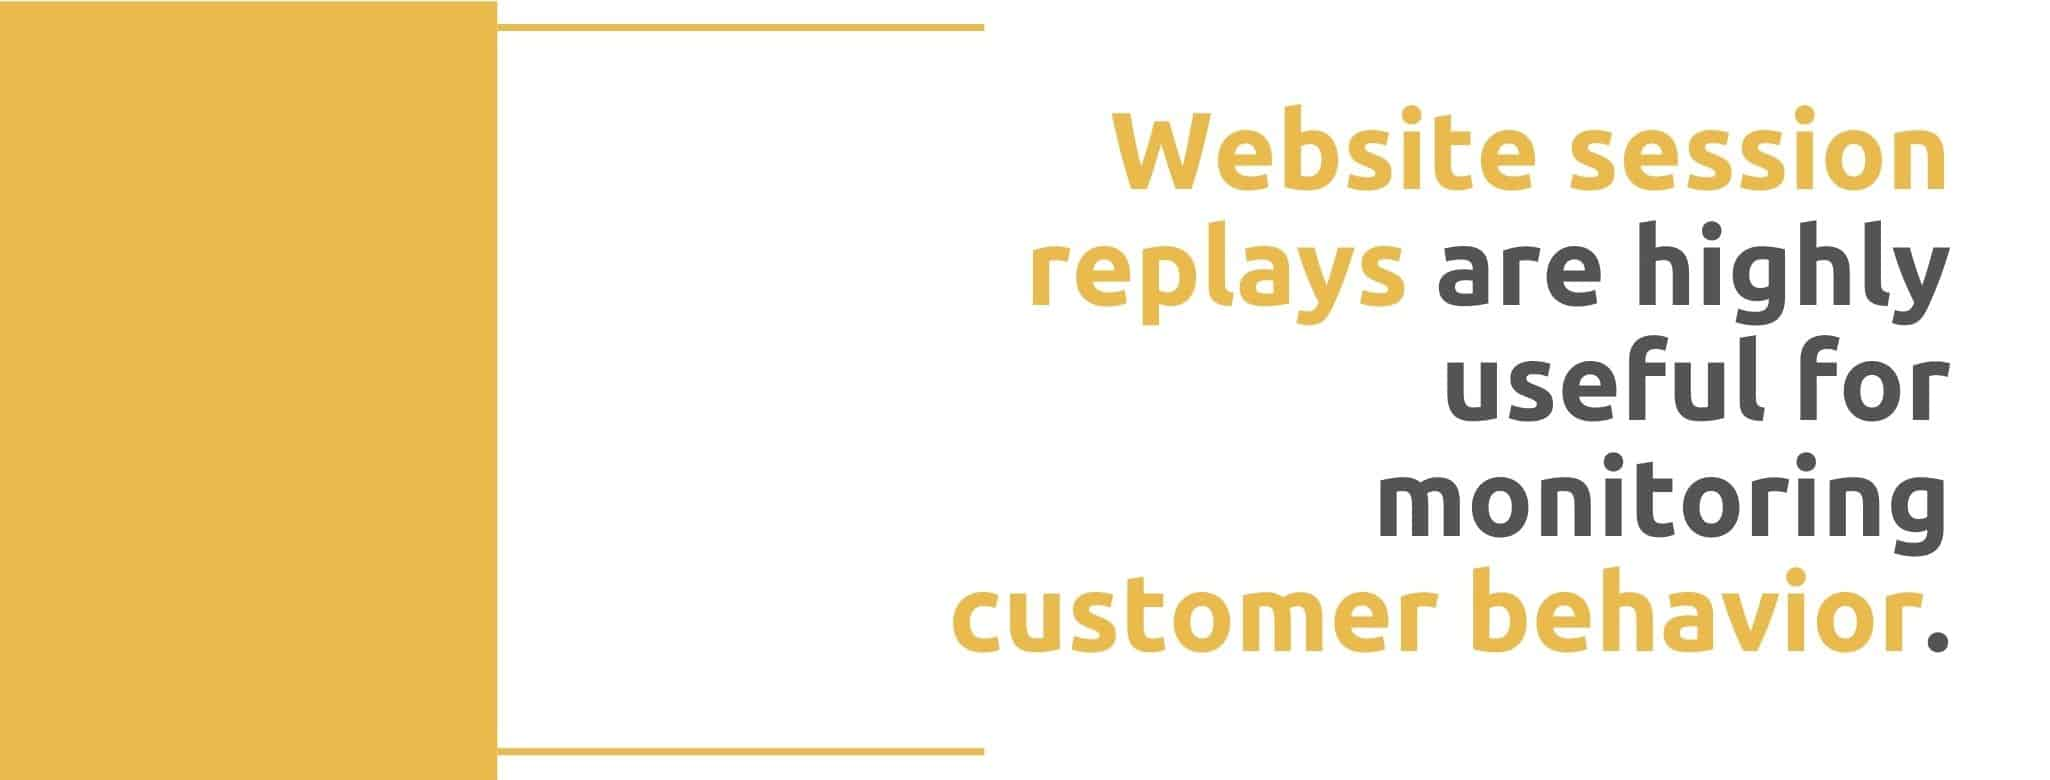 Website session replays are highly useful for monitoring customer behavior - 22 Ways to Collect Customer Feedback - Replyco